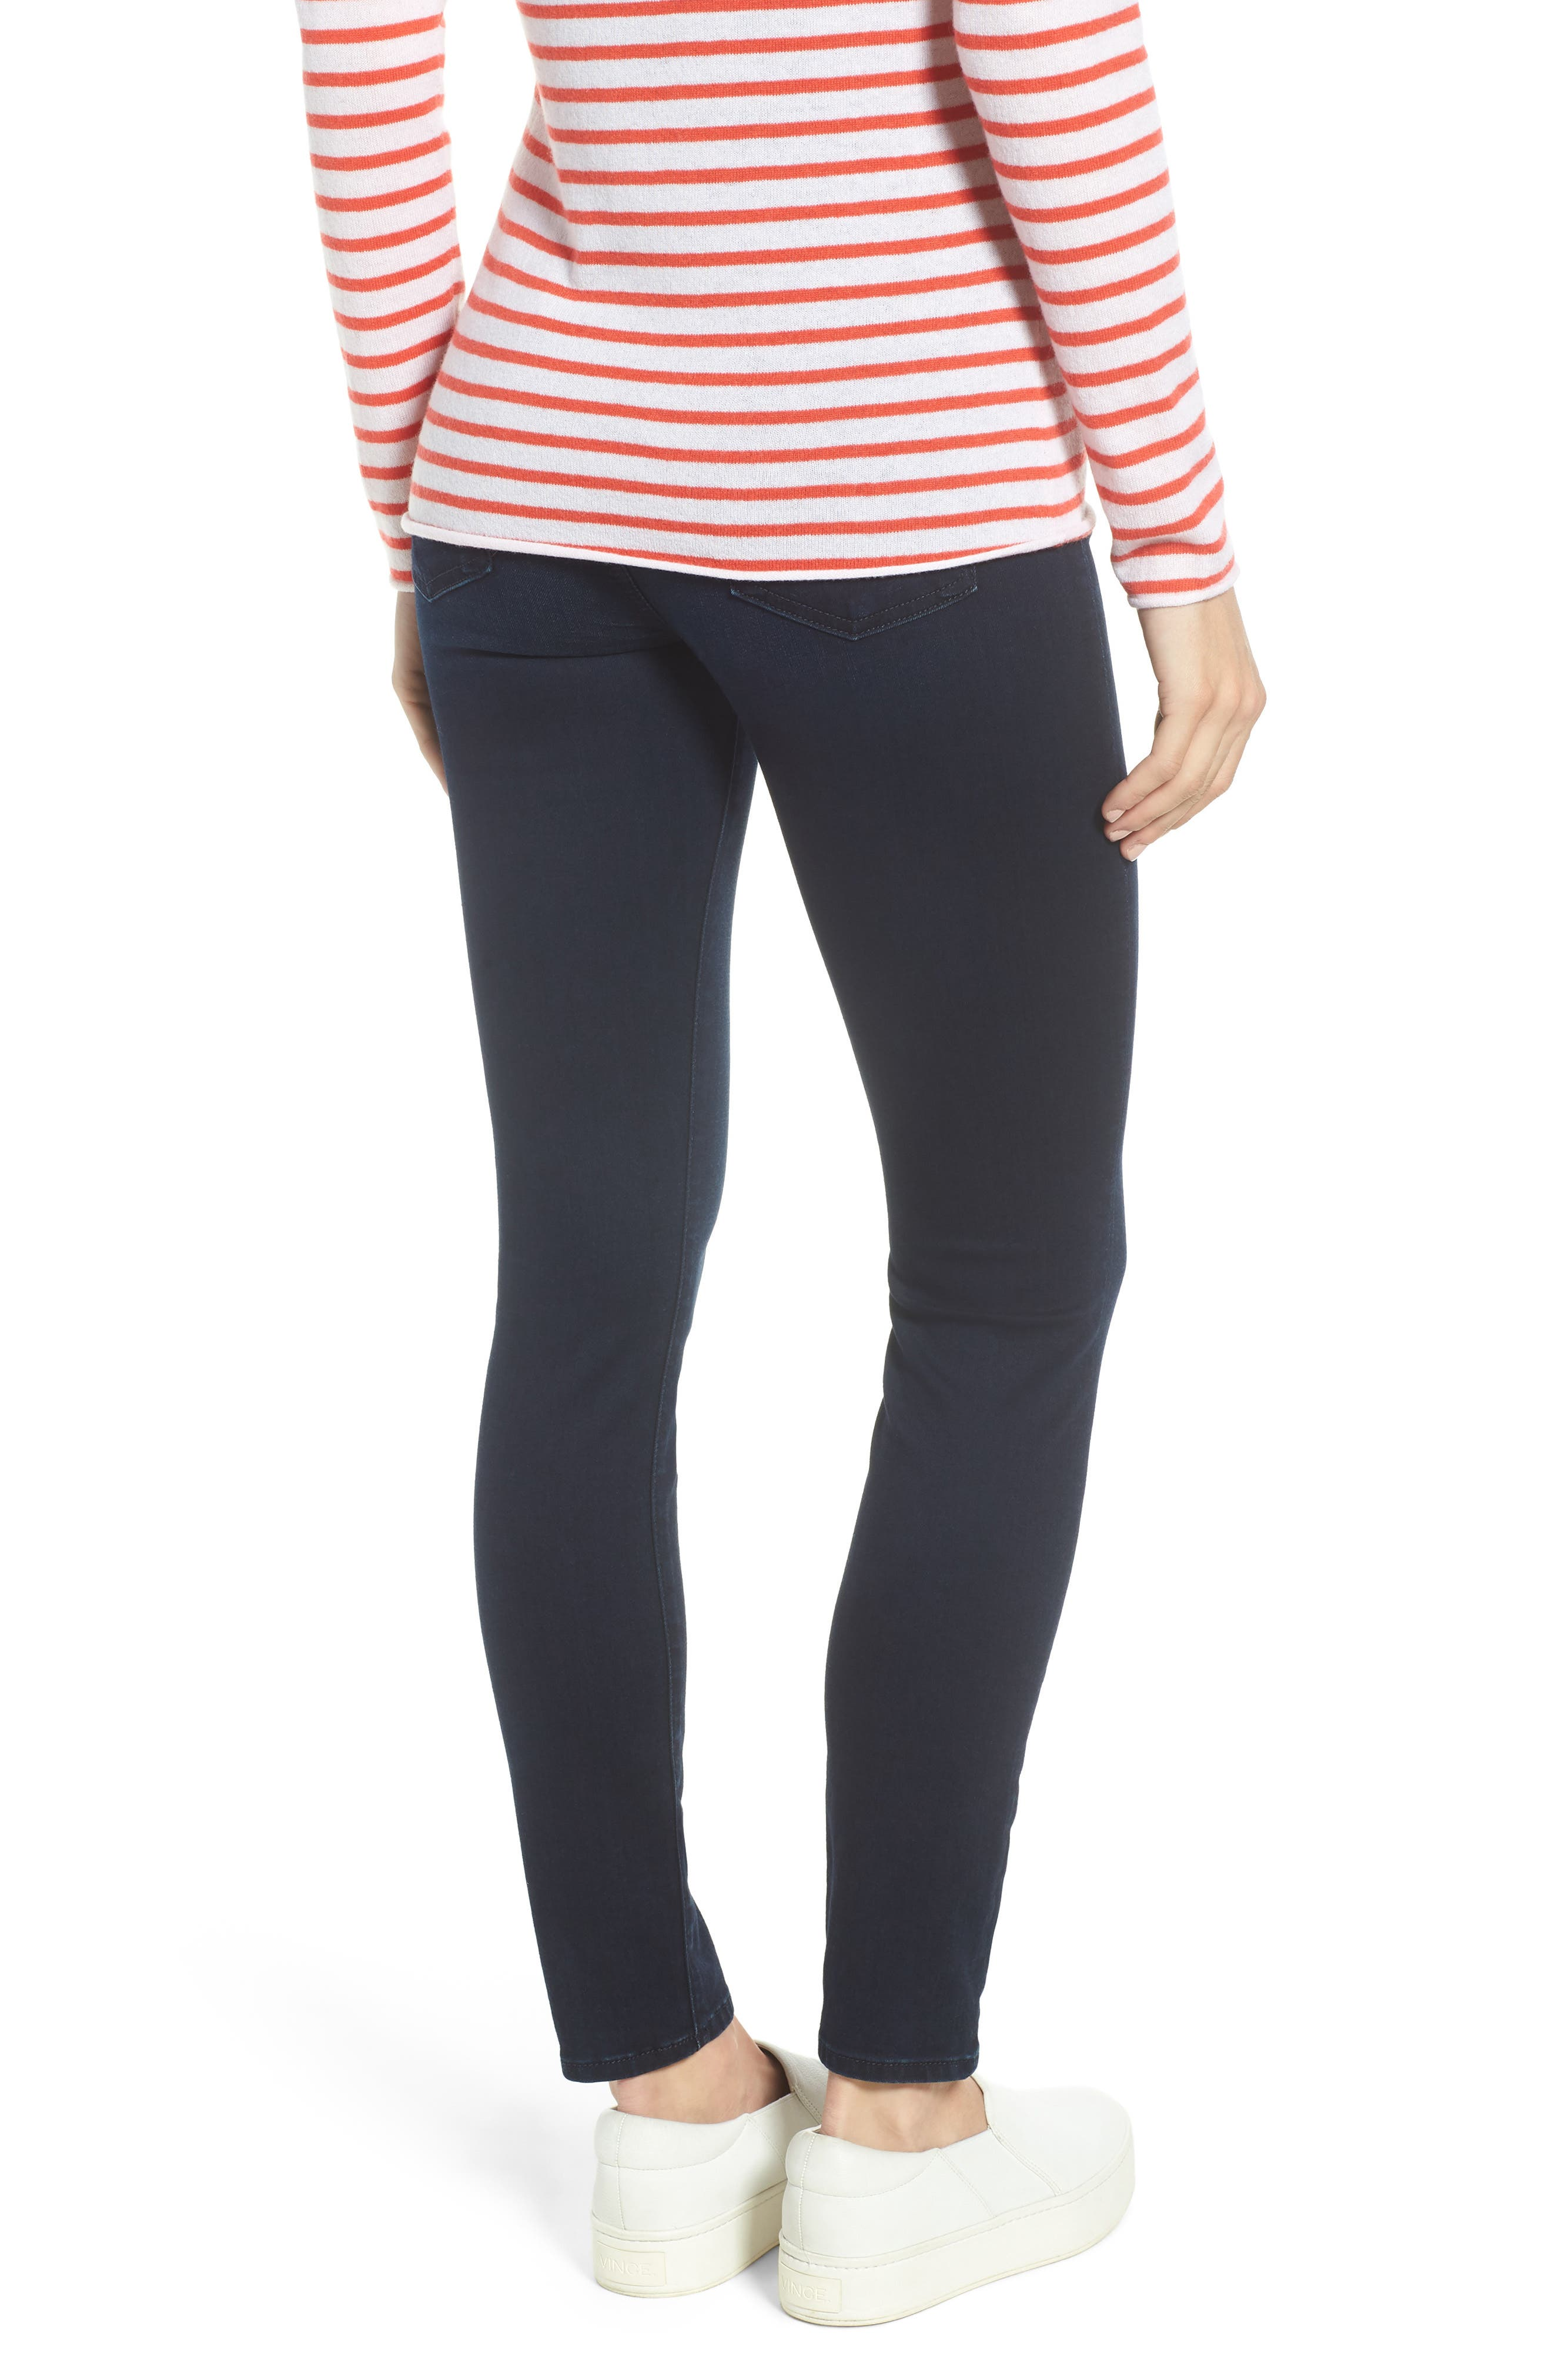 Comfort Skinny Denim Leggings,                             Alternate thumbnail 2, color,                             RICHE TOUCH BLUE/BLACK